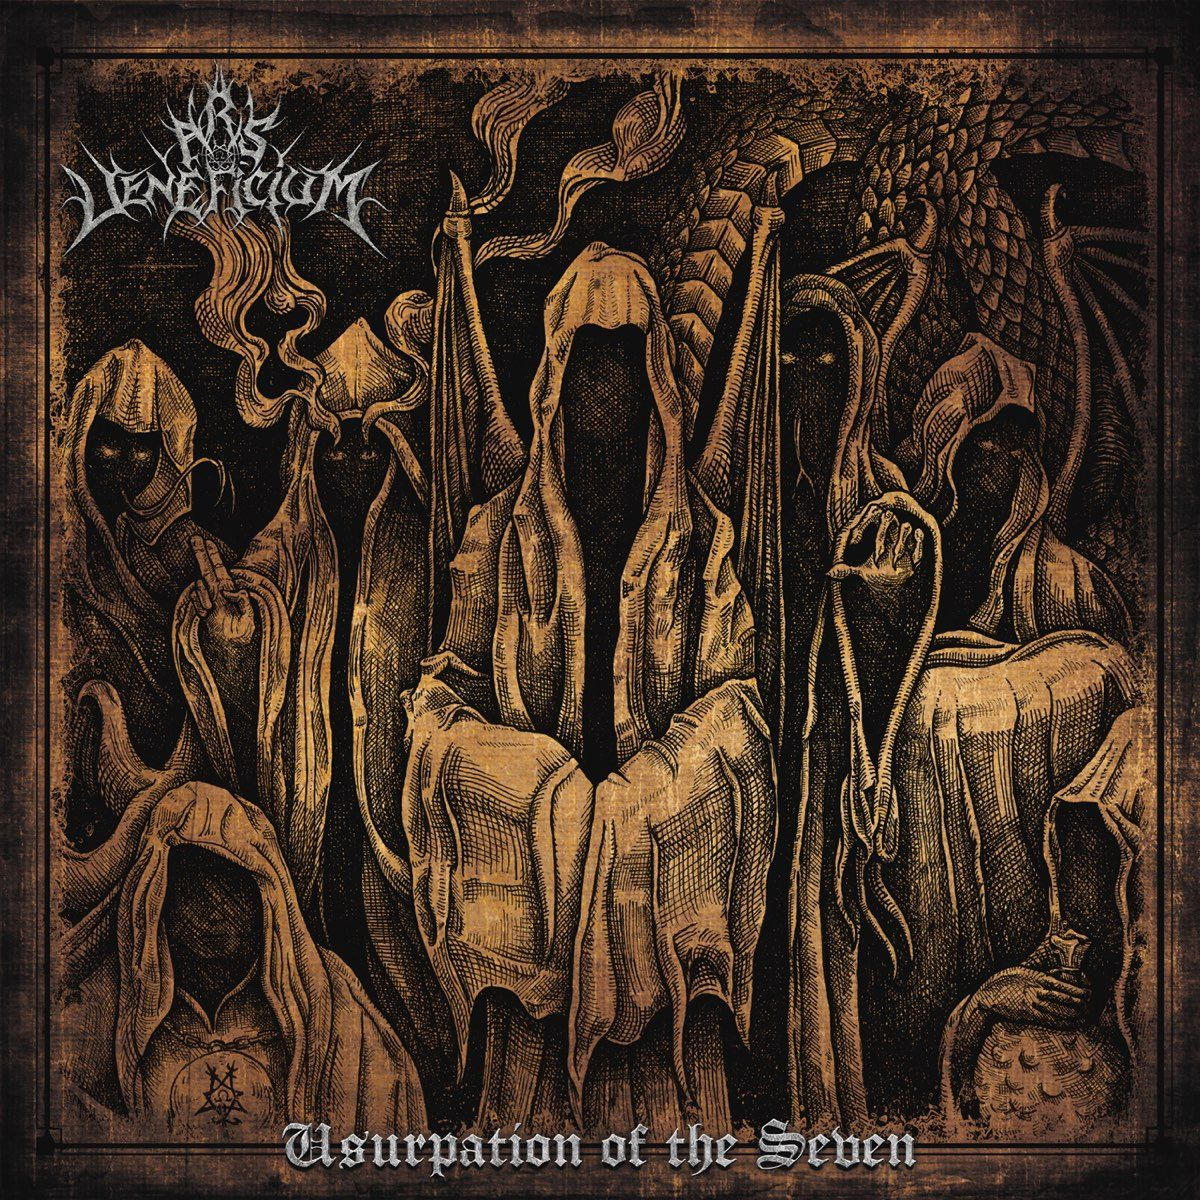 Review for Ars Veneficium - Usurpation of the Seven